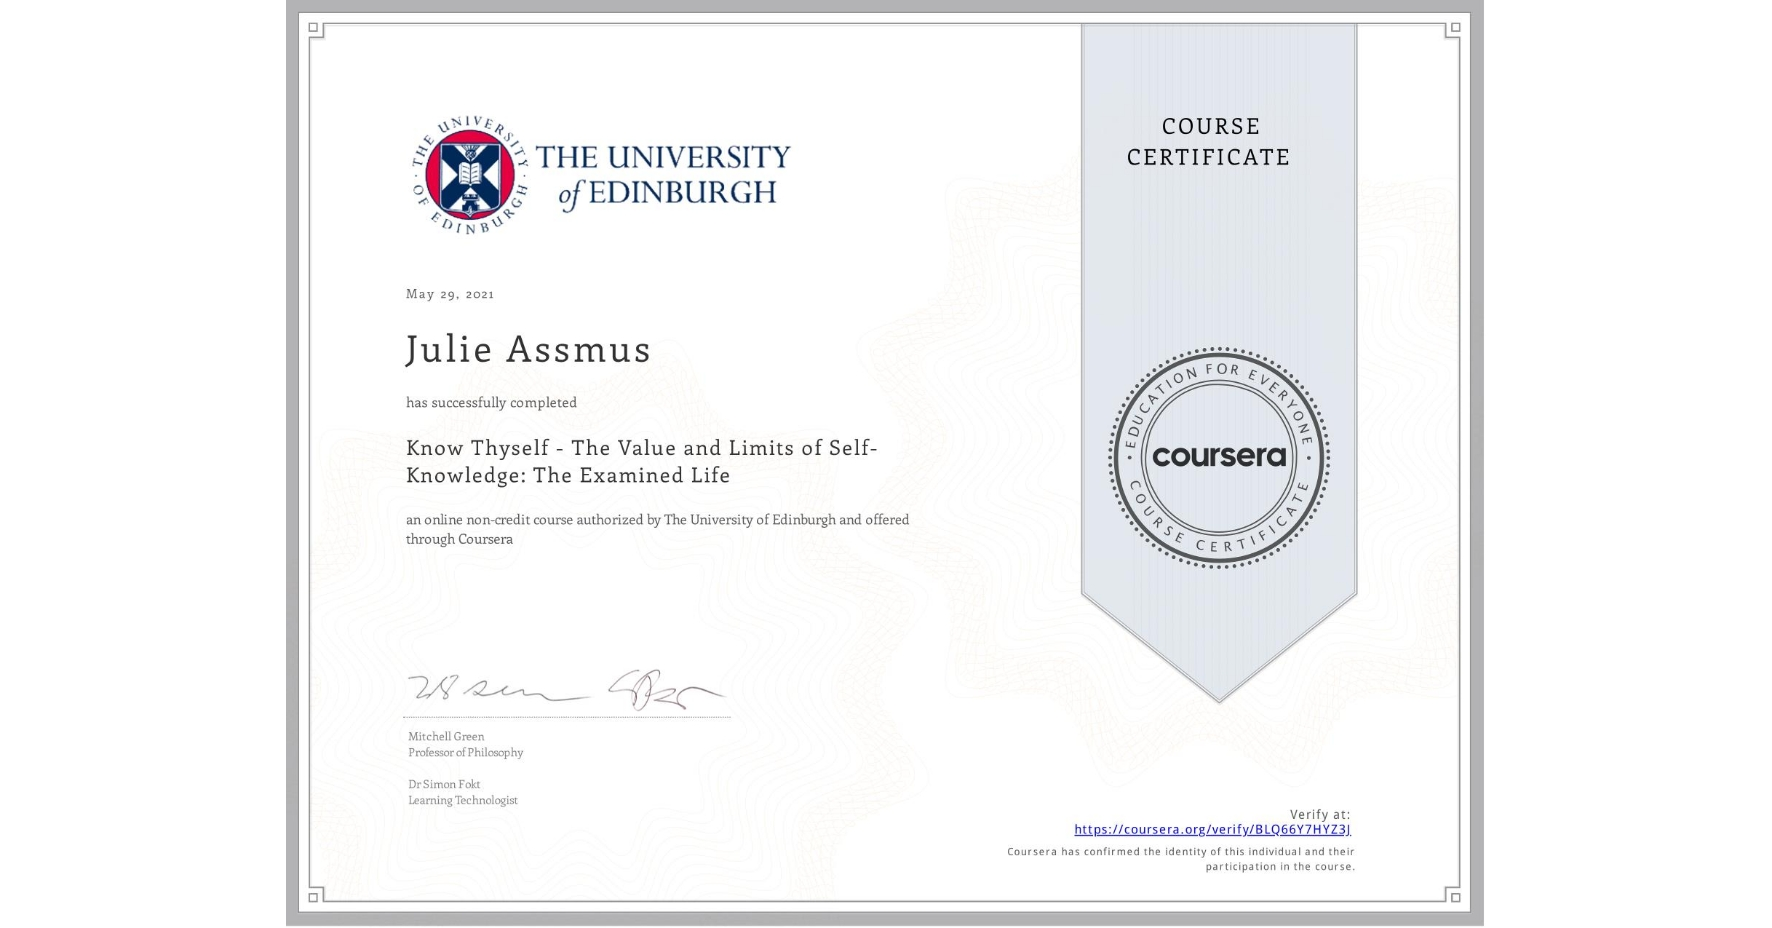 View certificate for Julie Assmus,  Know Thyself - The Value and Limits of Self-Knowledge: The Examined Life, an online non-credit course authorized by The University of Edinburgh and offered through Coursera